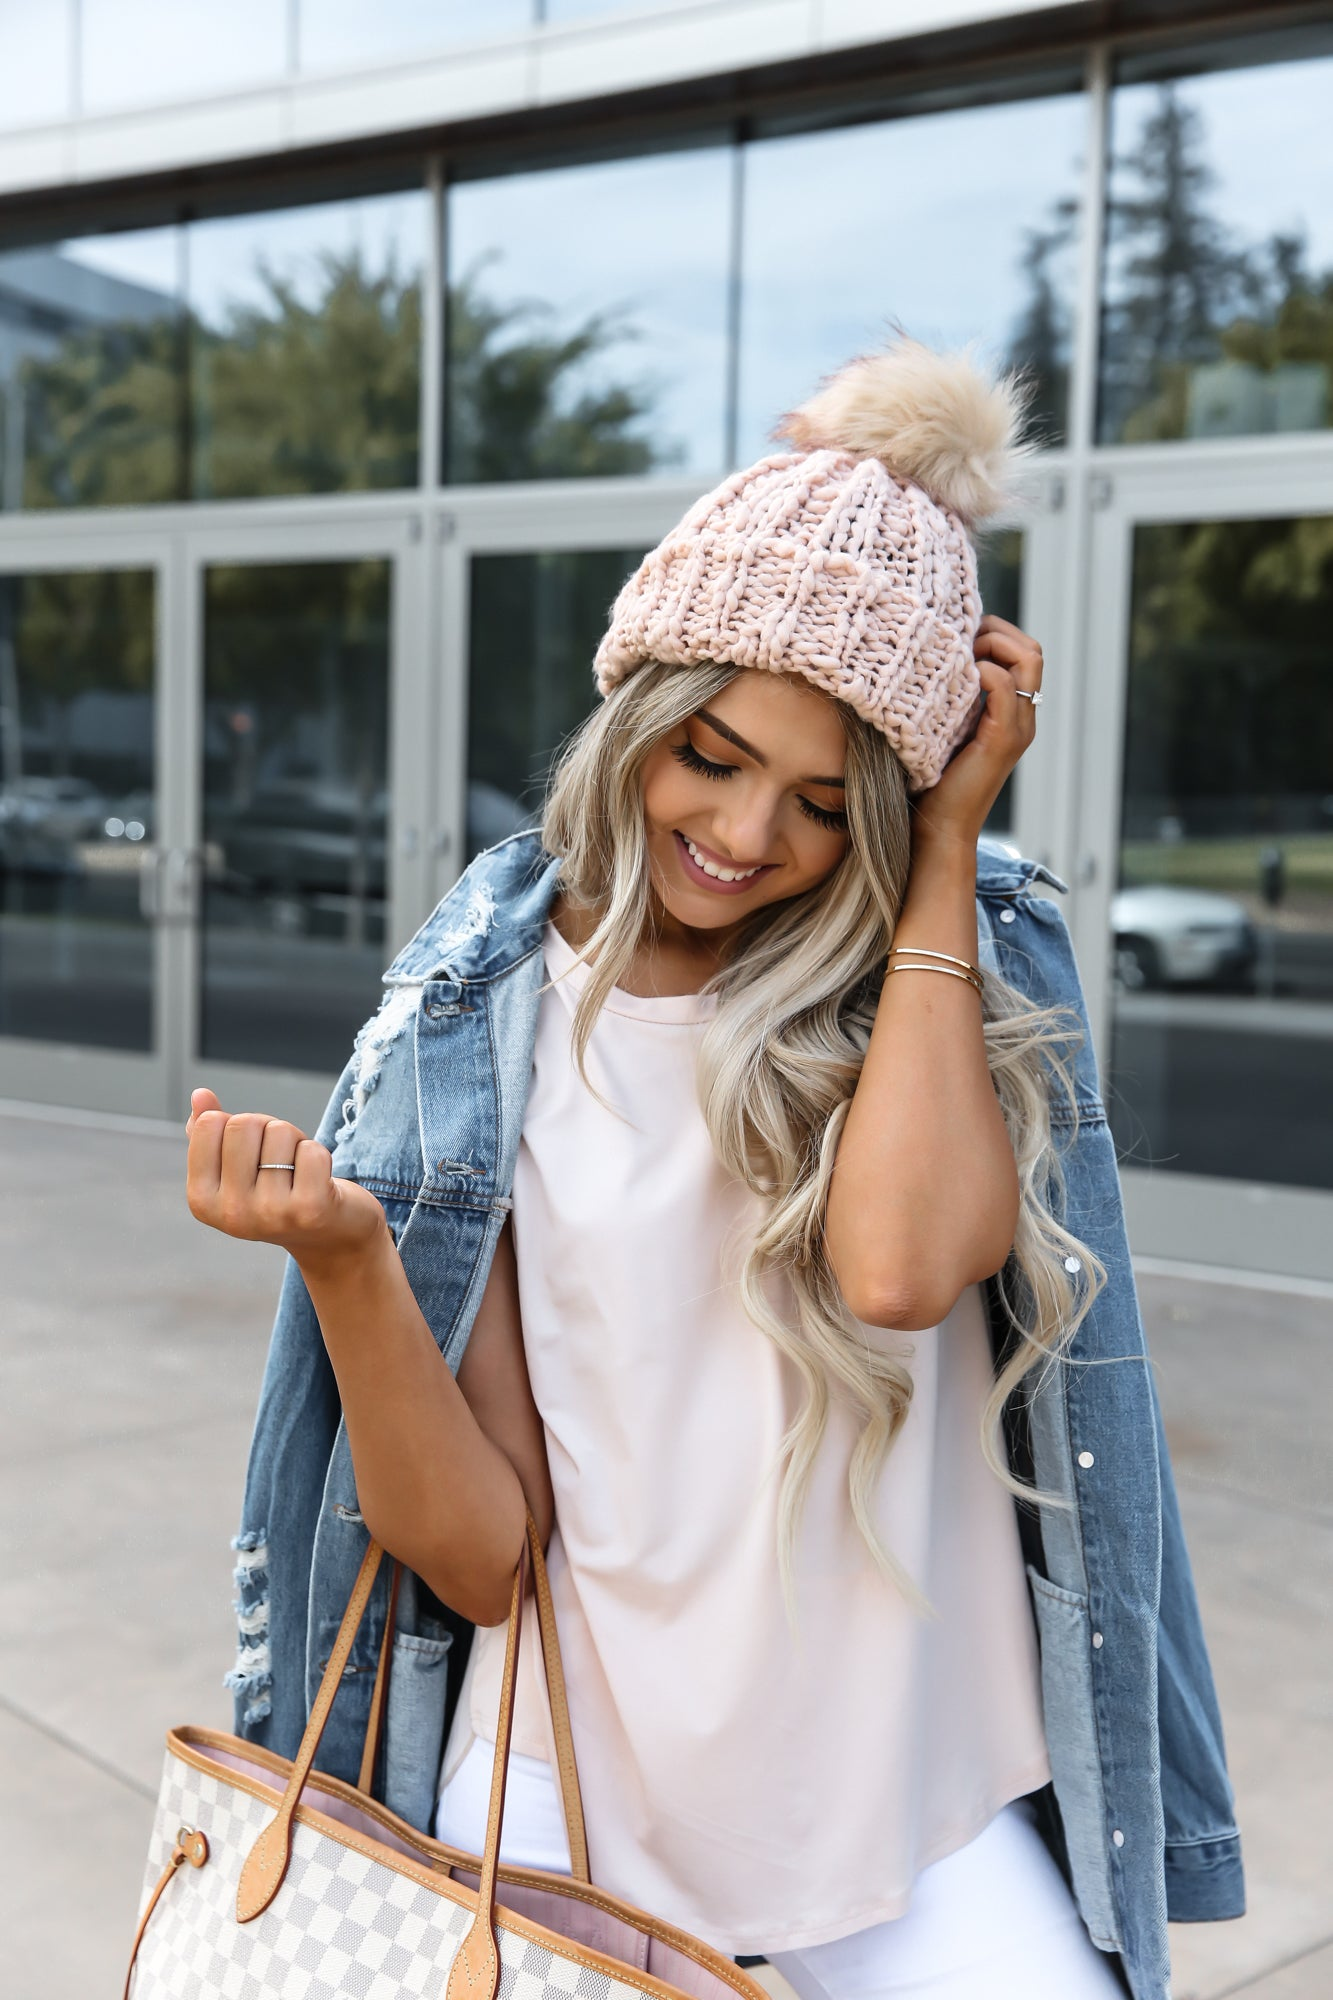 Pink Knit Beanie Hat with Fur Pom Pom